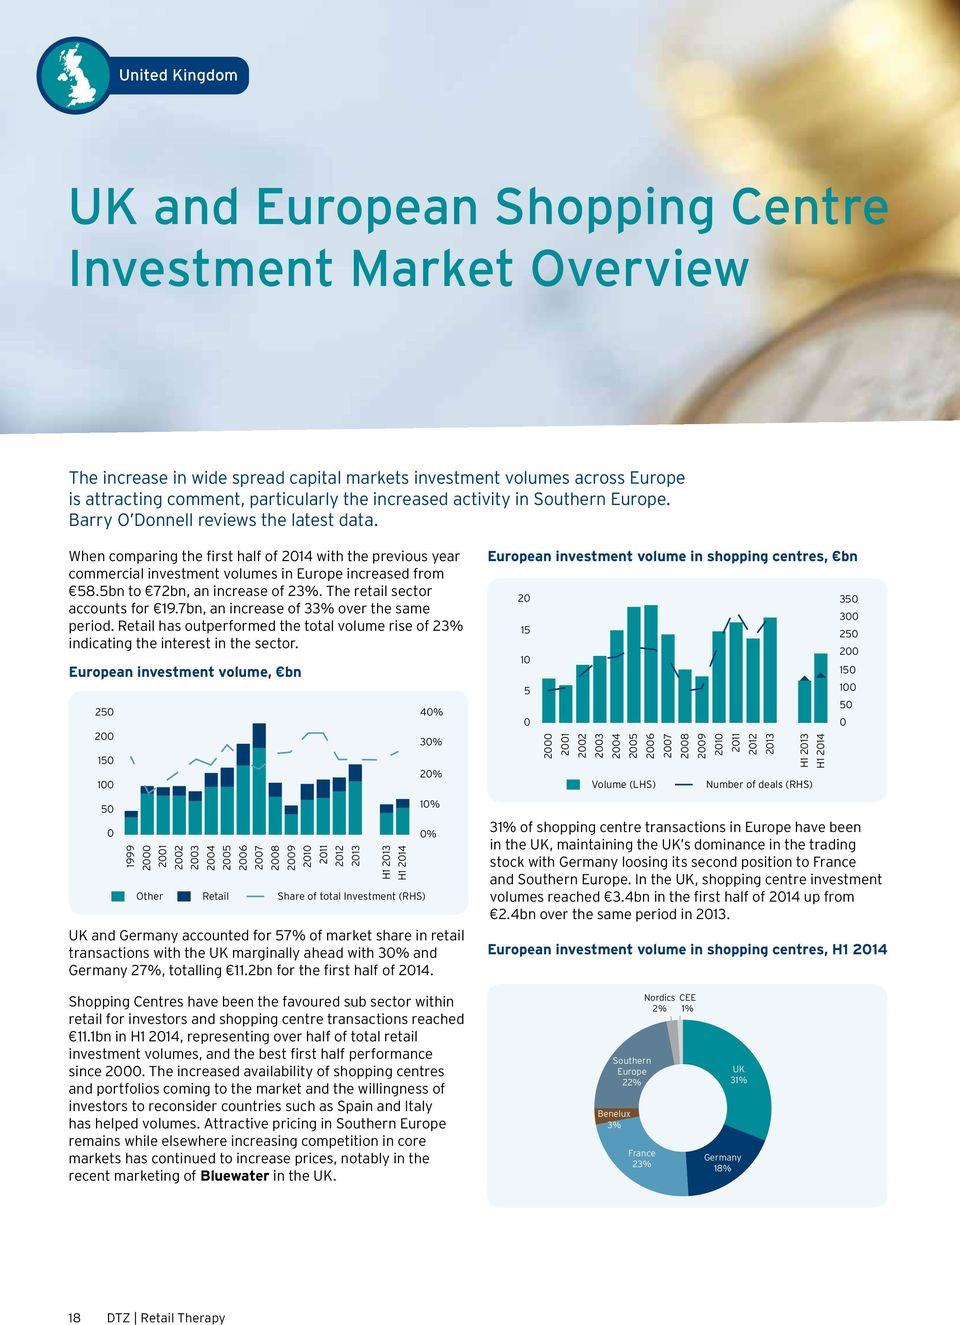 5bn to 72bn, an increase of 23%. The retail sector accounts for 19.7bn, an increase of 33% over the same period.